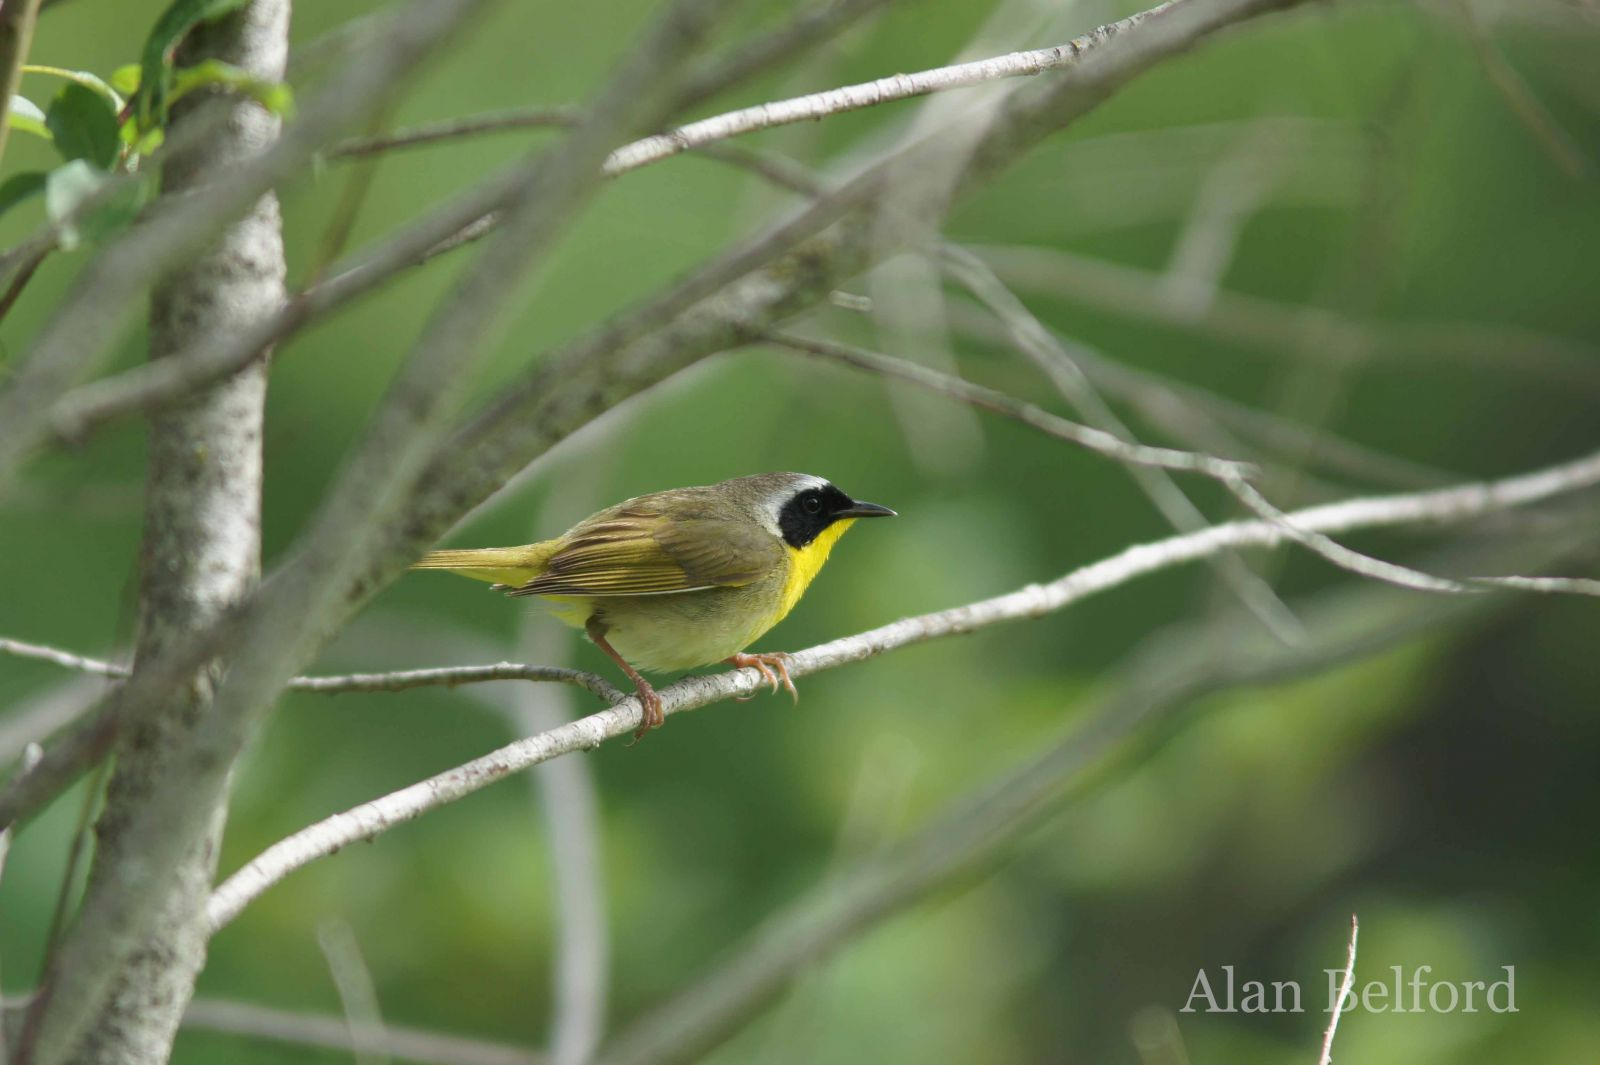 Common Yellowthroats sang from the habitat surrounding the oxbow.